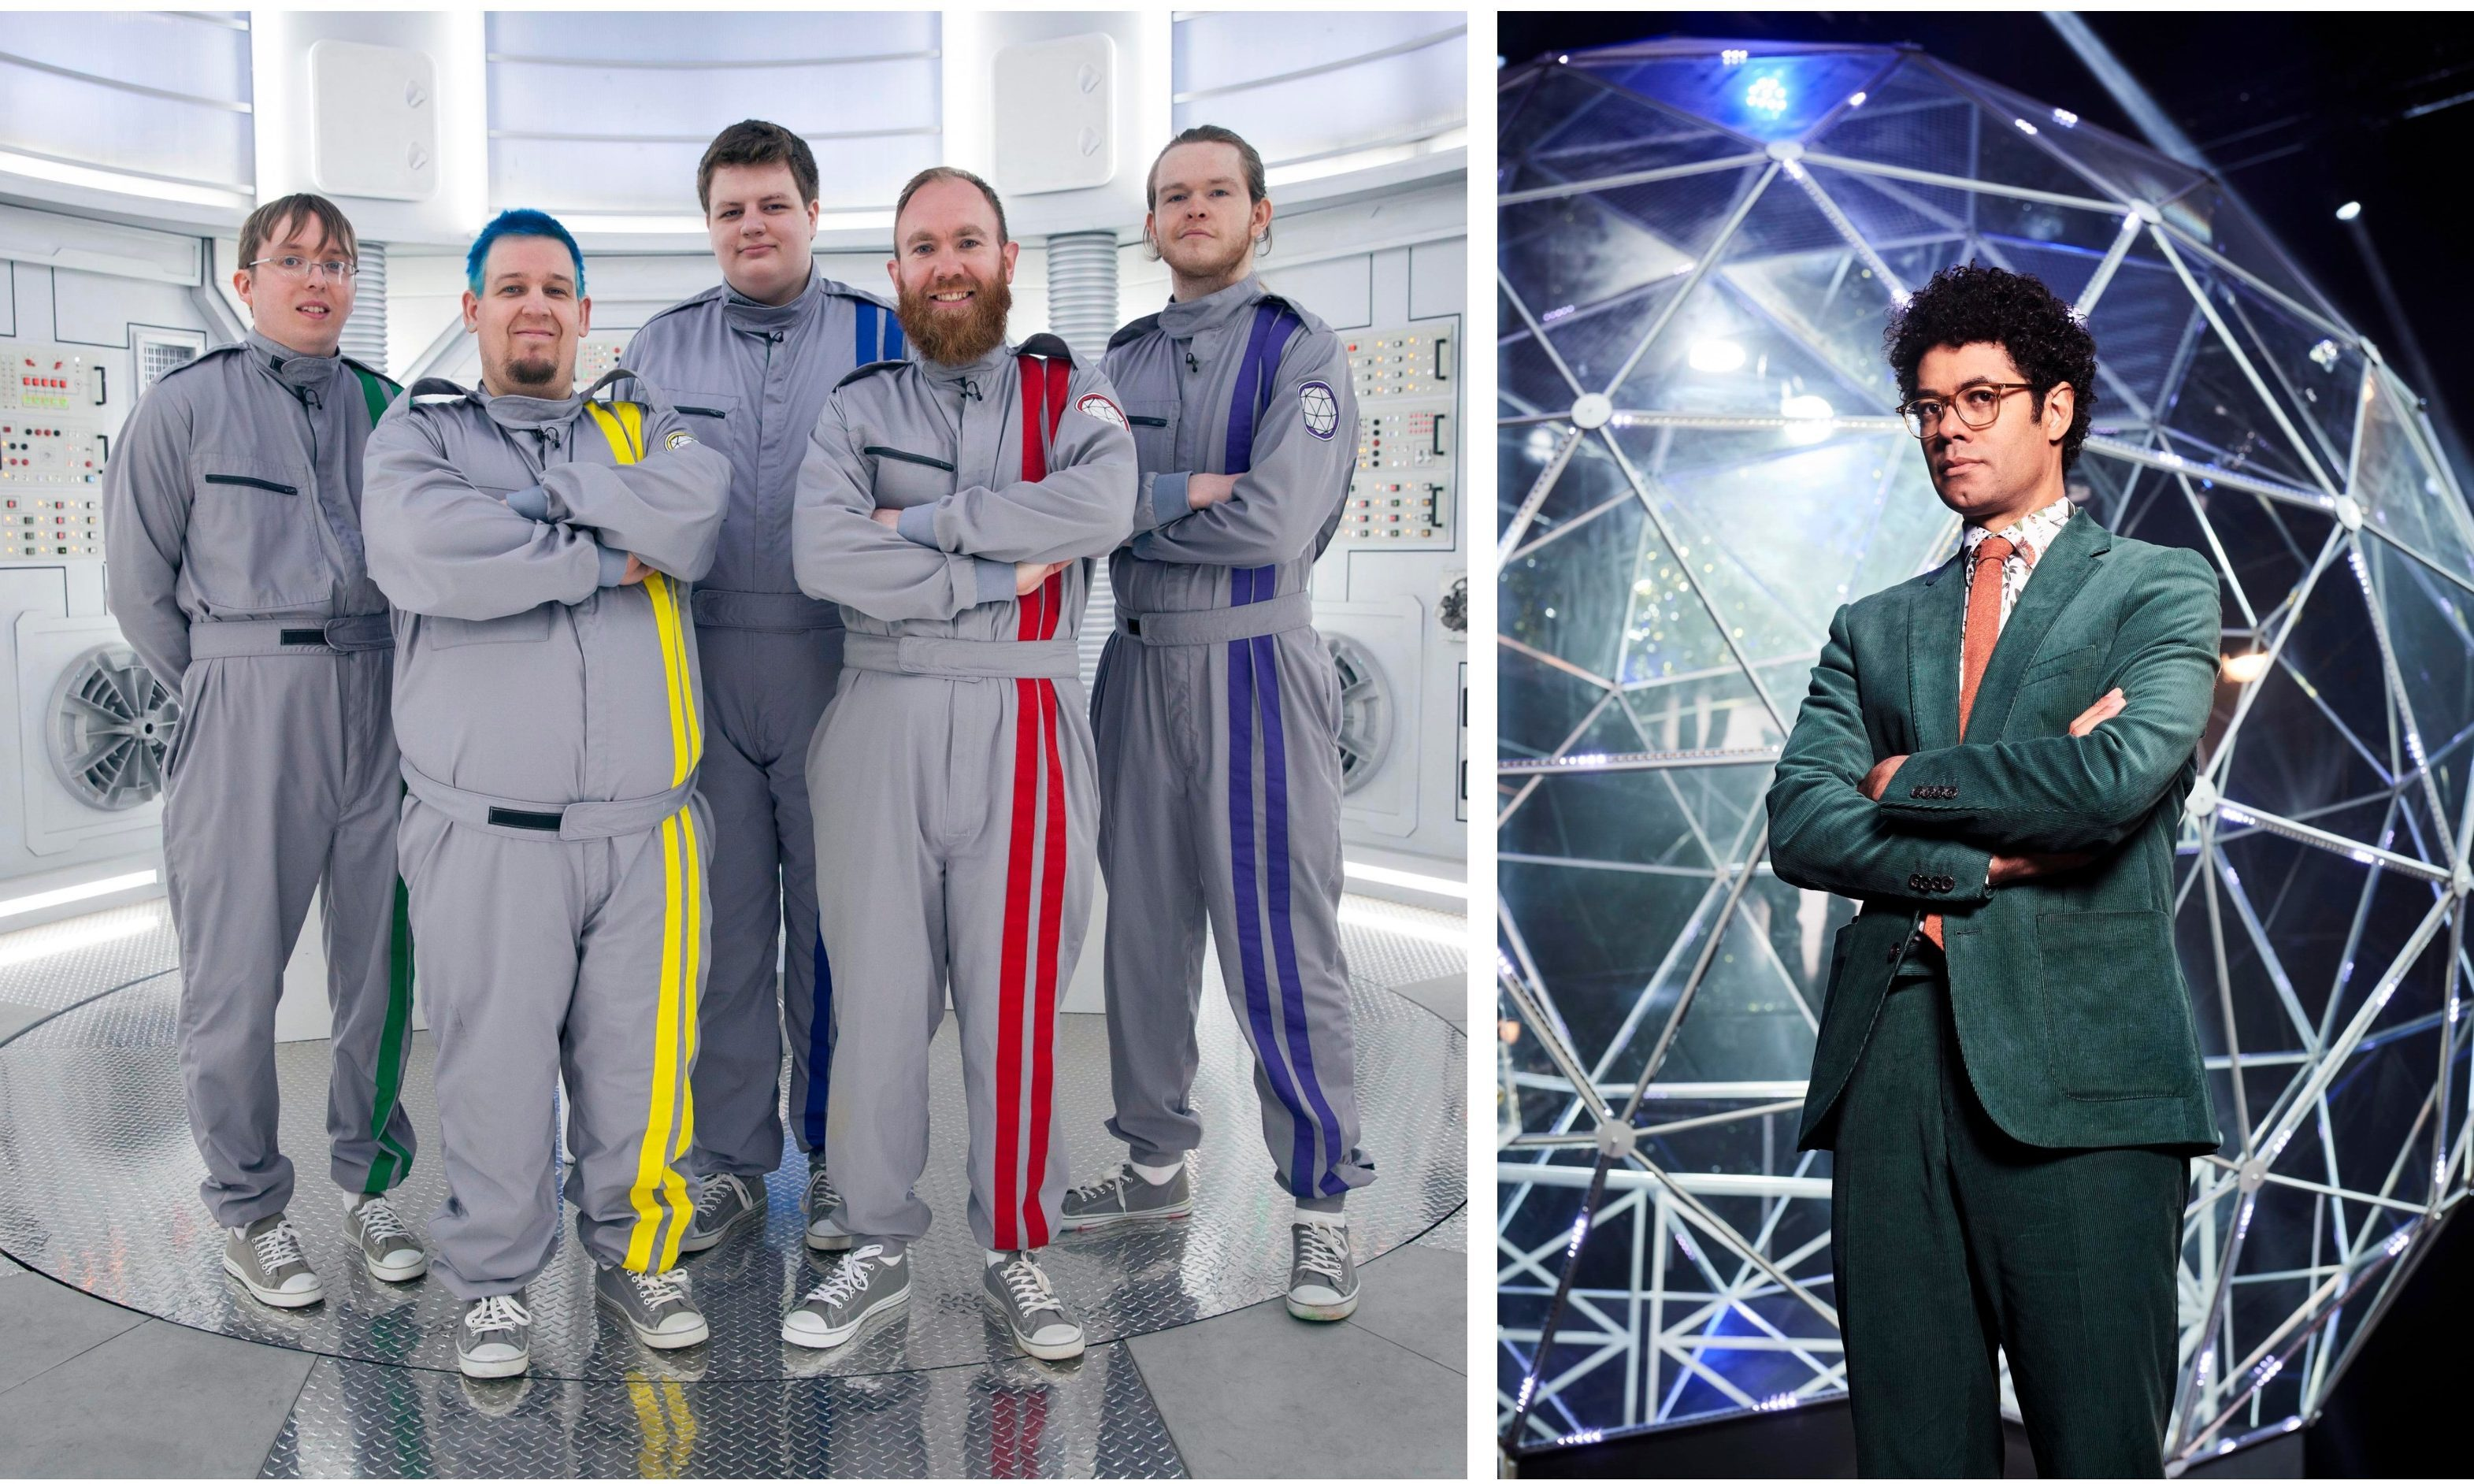 """""""The Gamers"""". From left: William Stephen, Martyn Shaw, Ross Gauld, Meil McGregor and Mathew Tosh. Right: Presenter Richard Ayoade."""